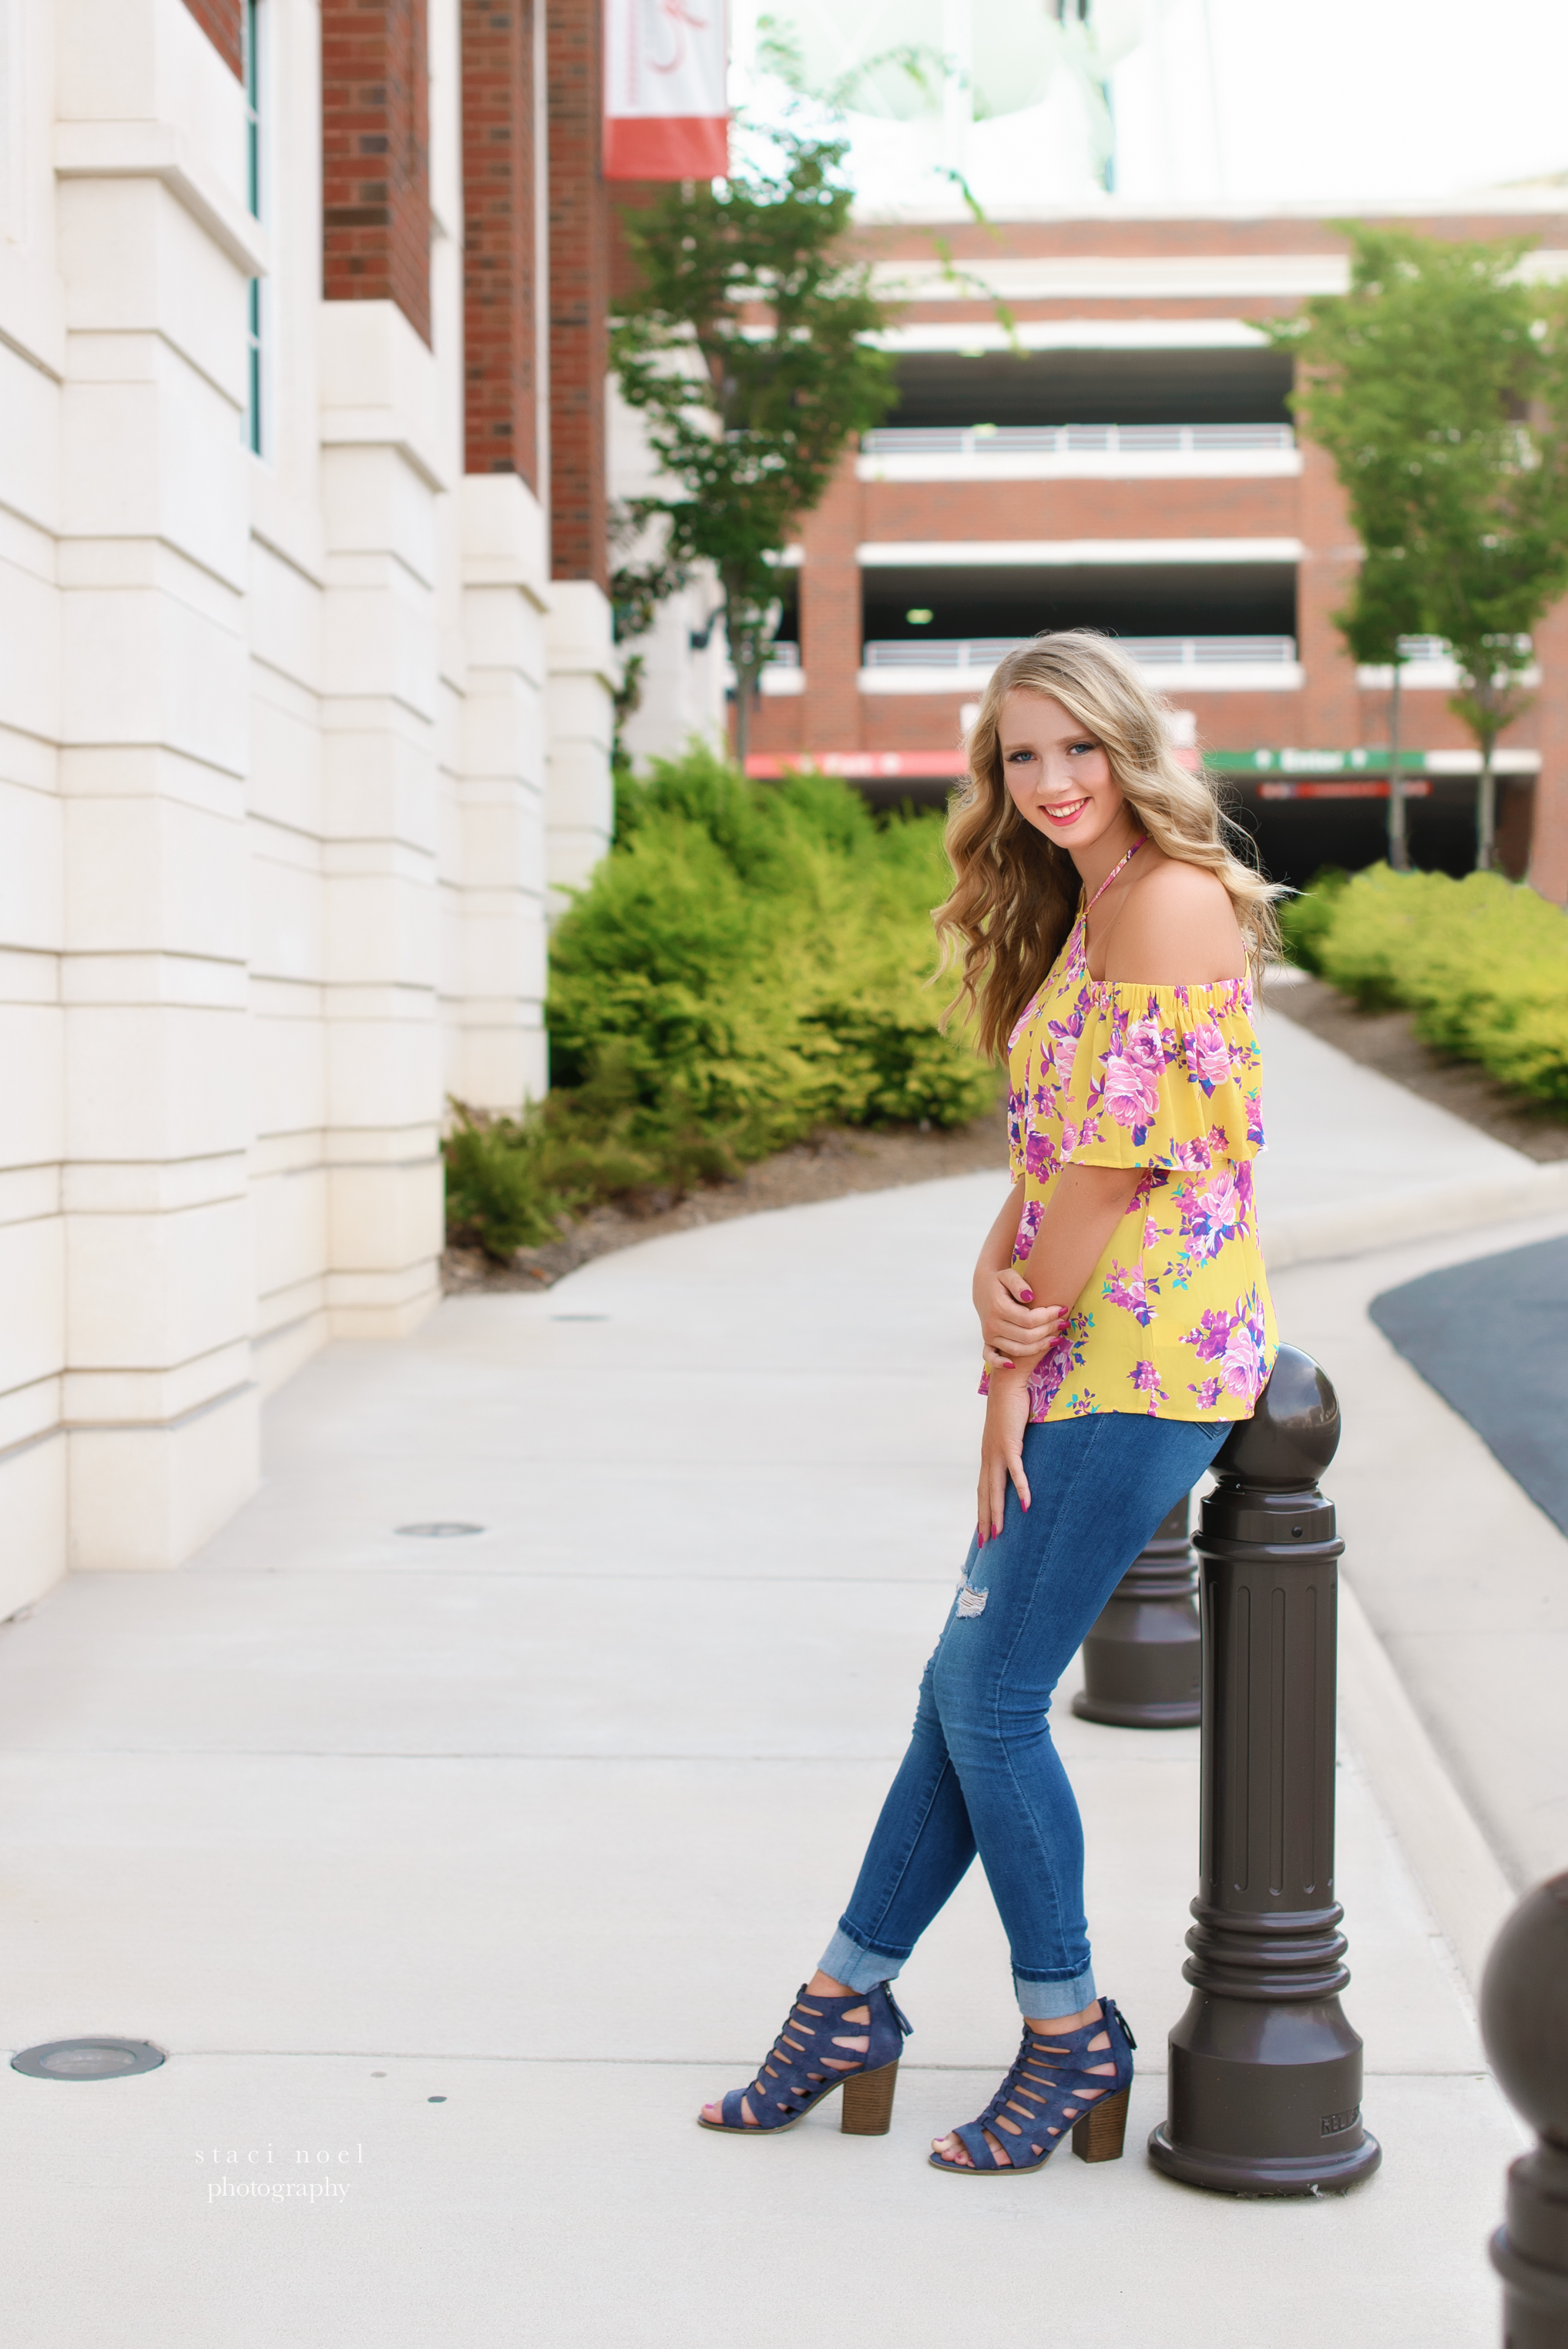 harrisburg senior photographer | hickory ridge